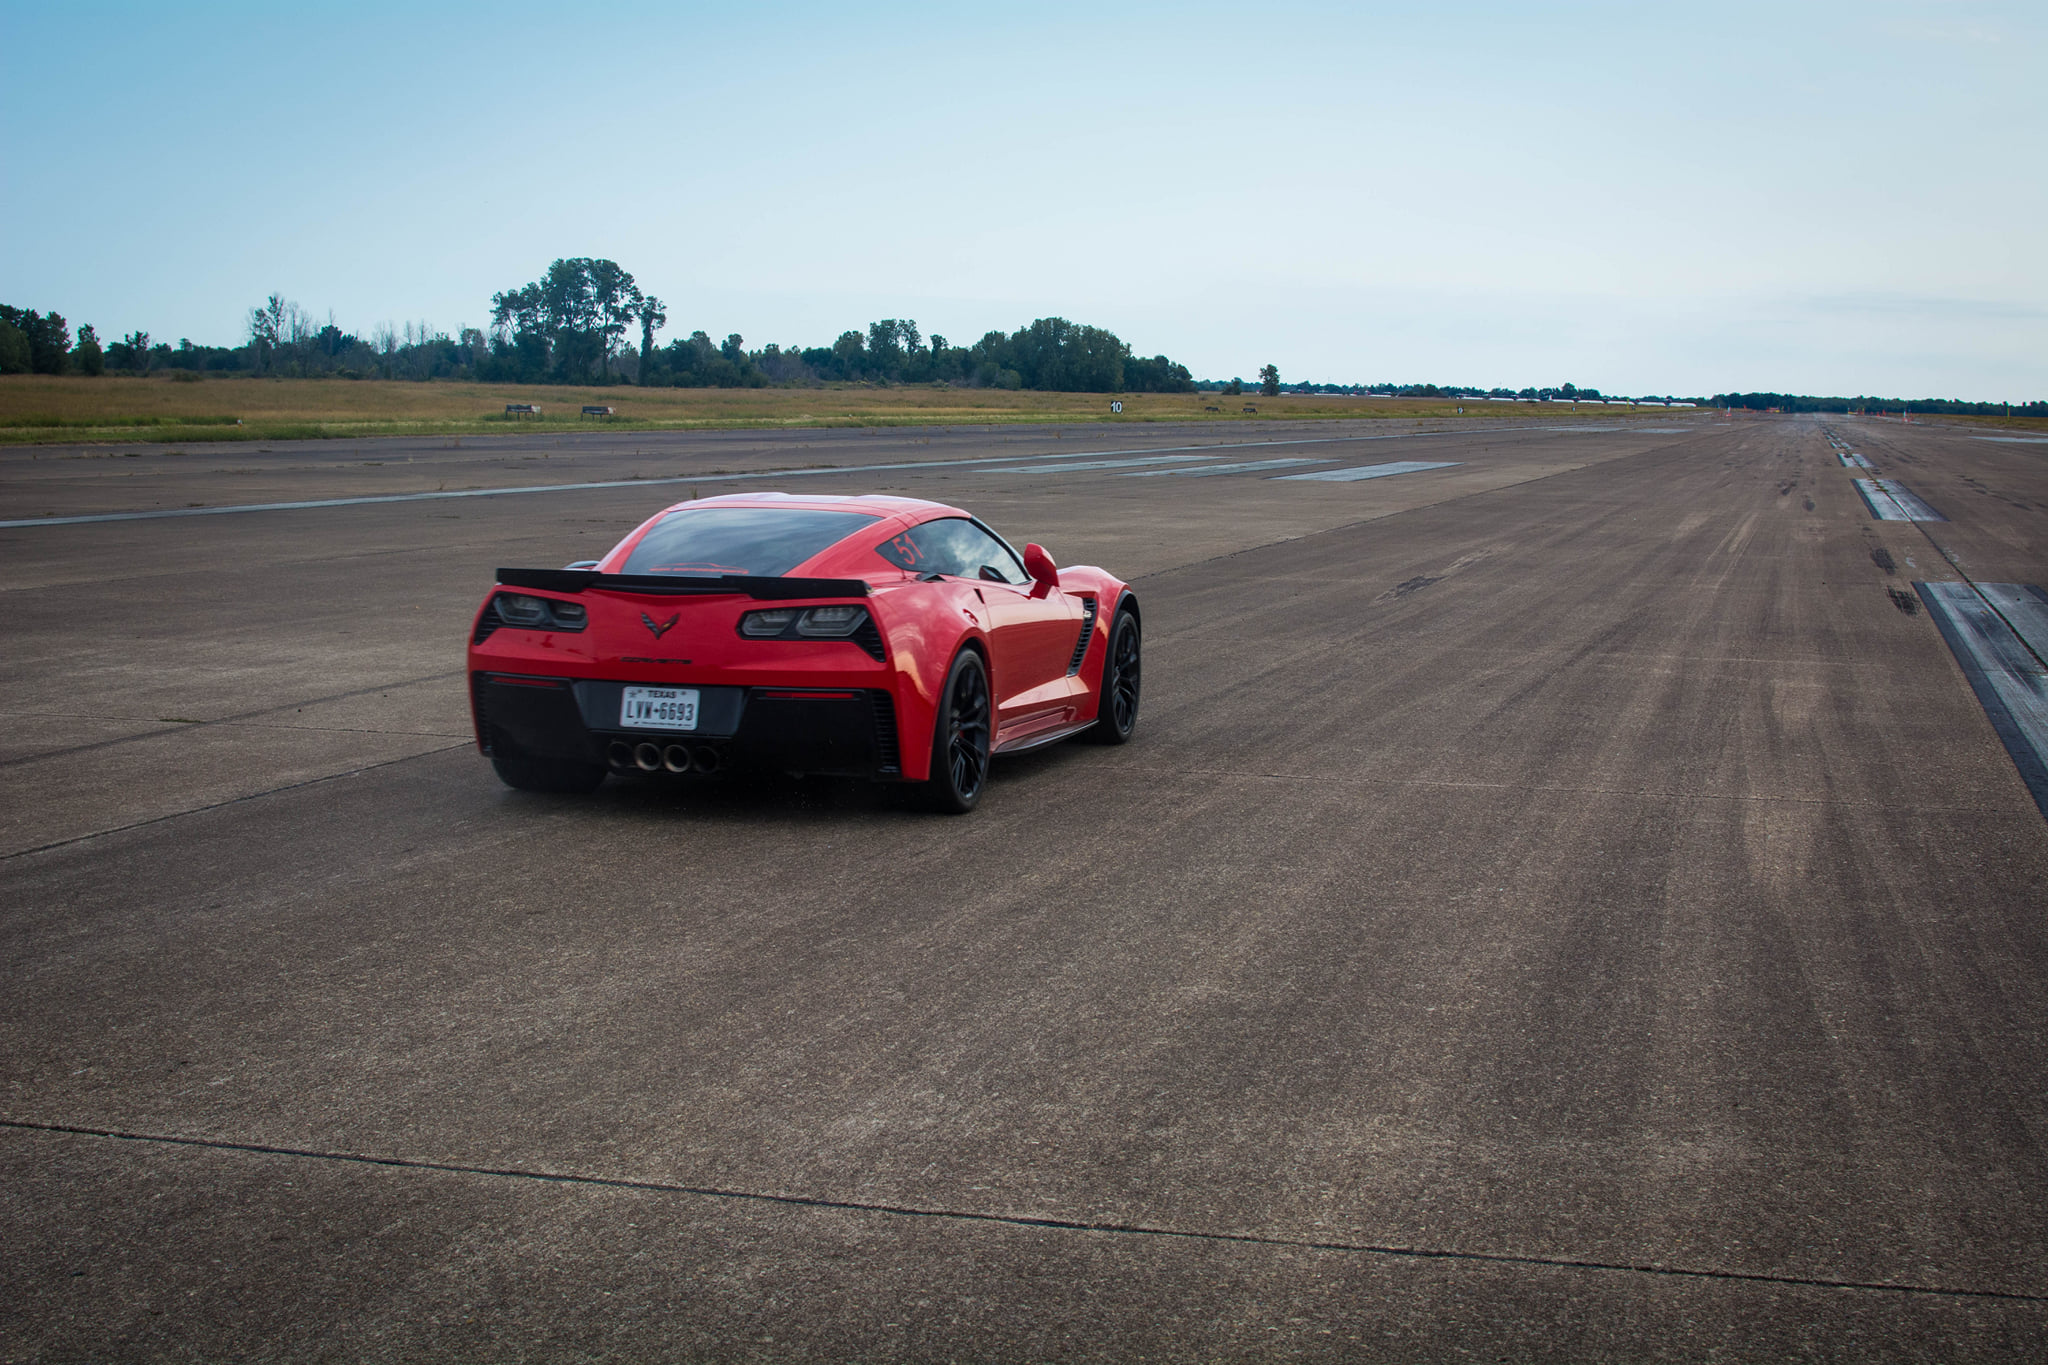 Red Corvette on an Airstrip